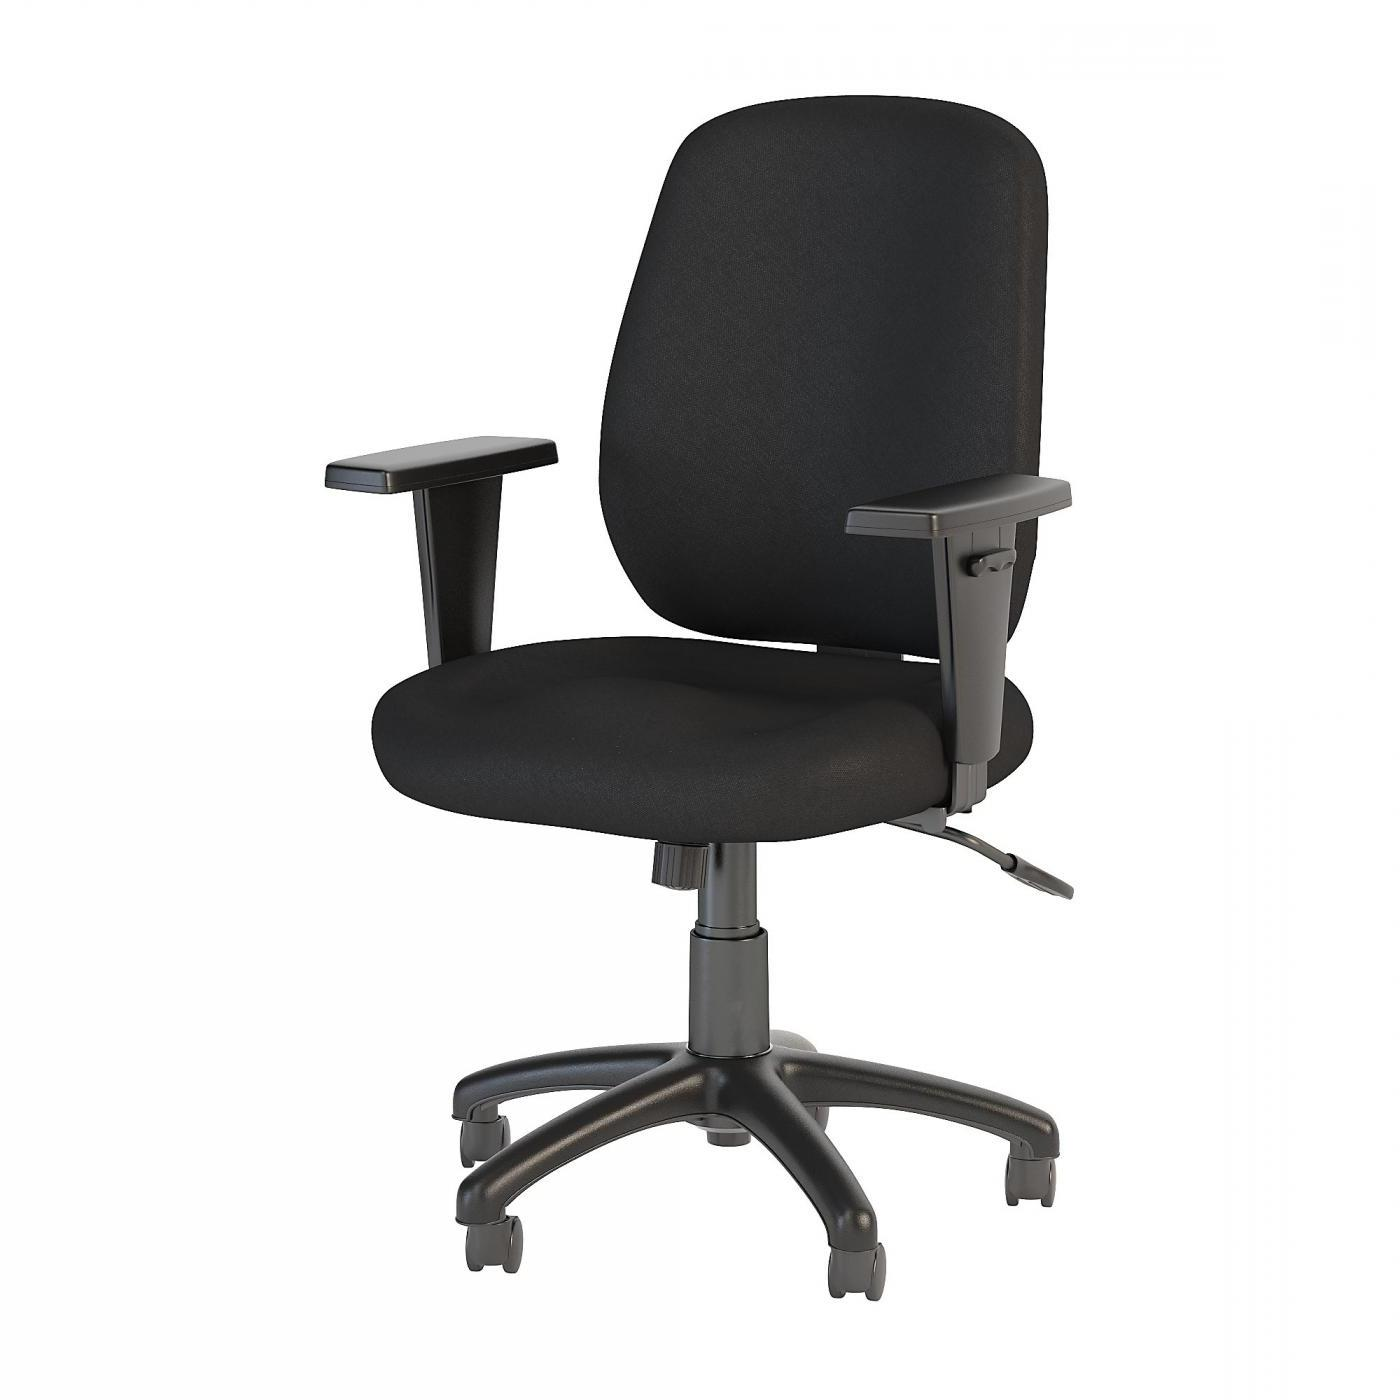 <font color=#c60><b>BUSH BUSINESS FURNITURE PROSPER MID BACK TASK CHAIR. FREE SHIPPING</font></b> </font></b></font></b>